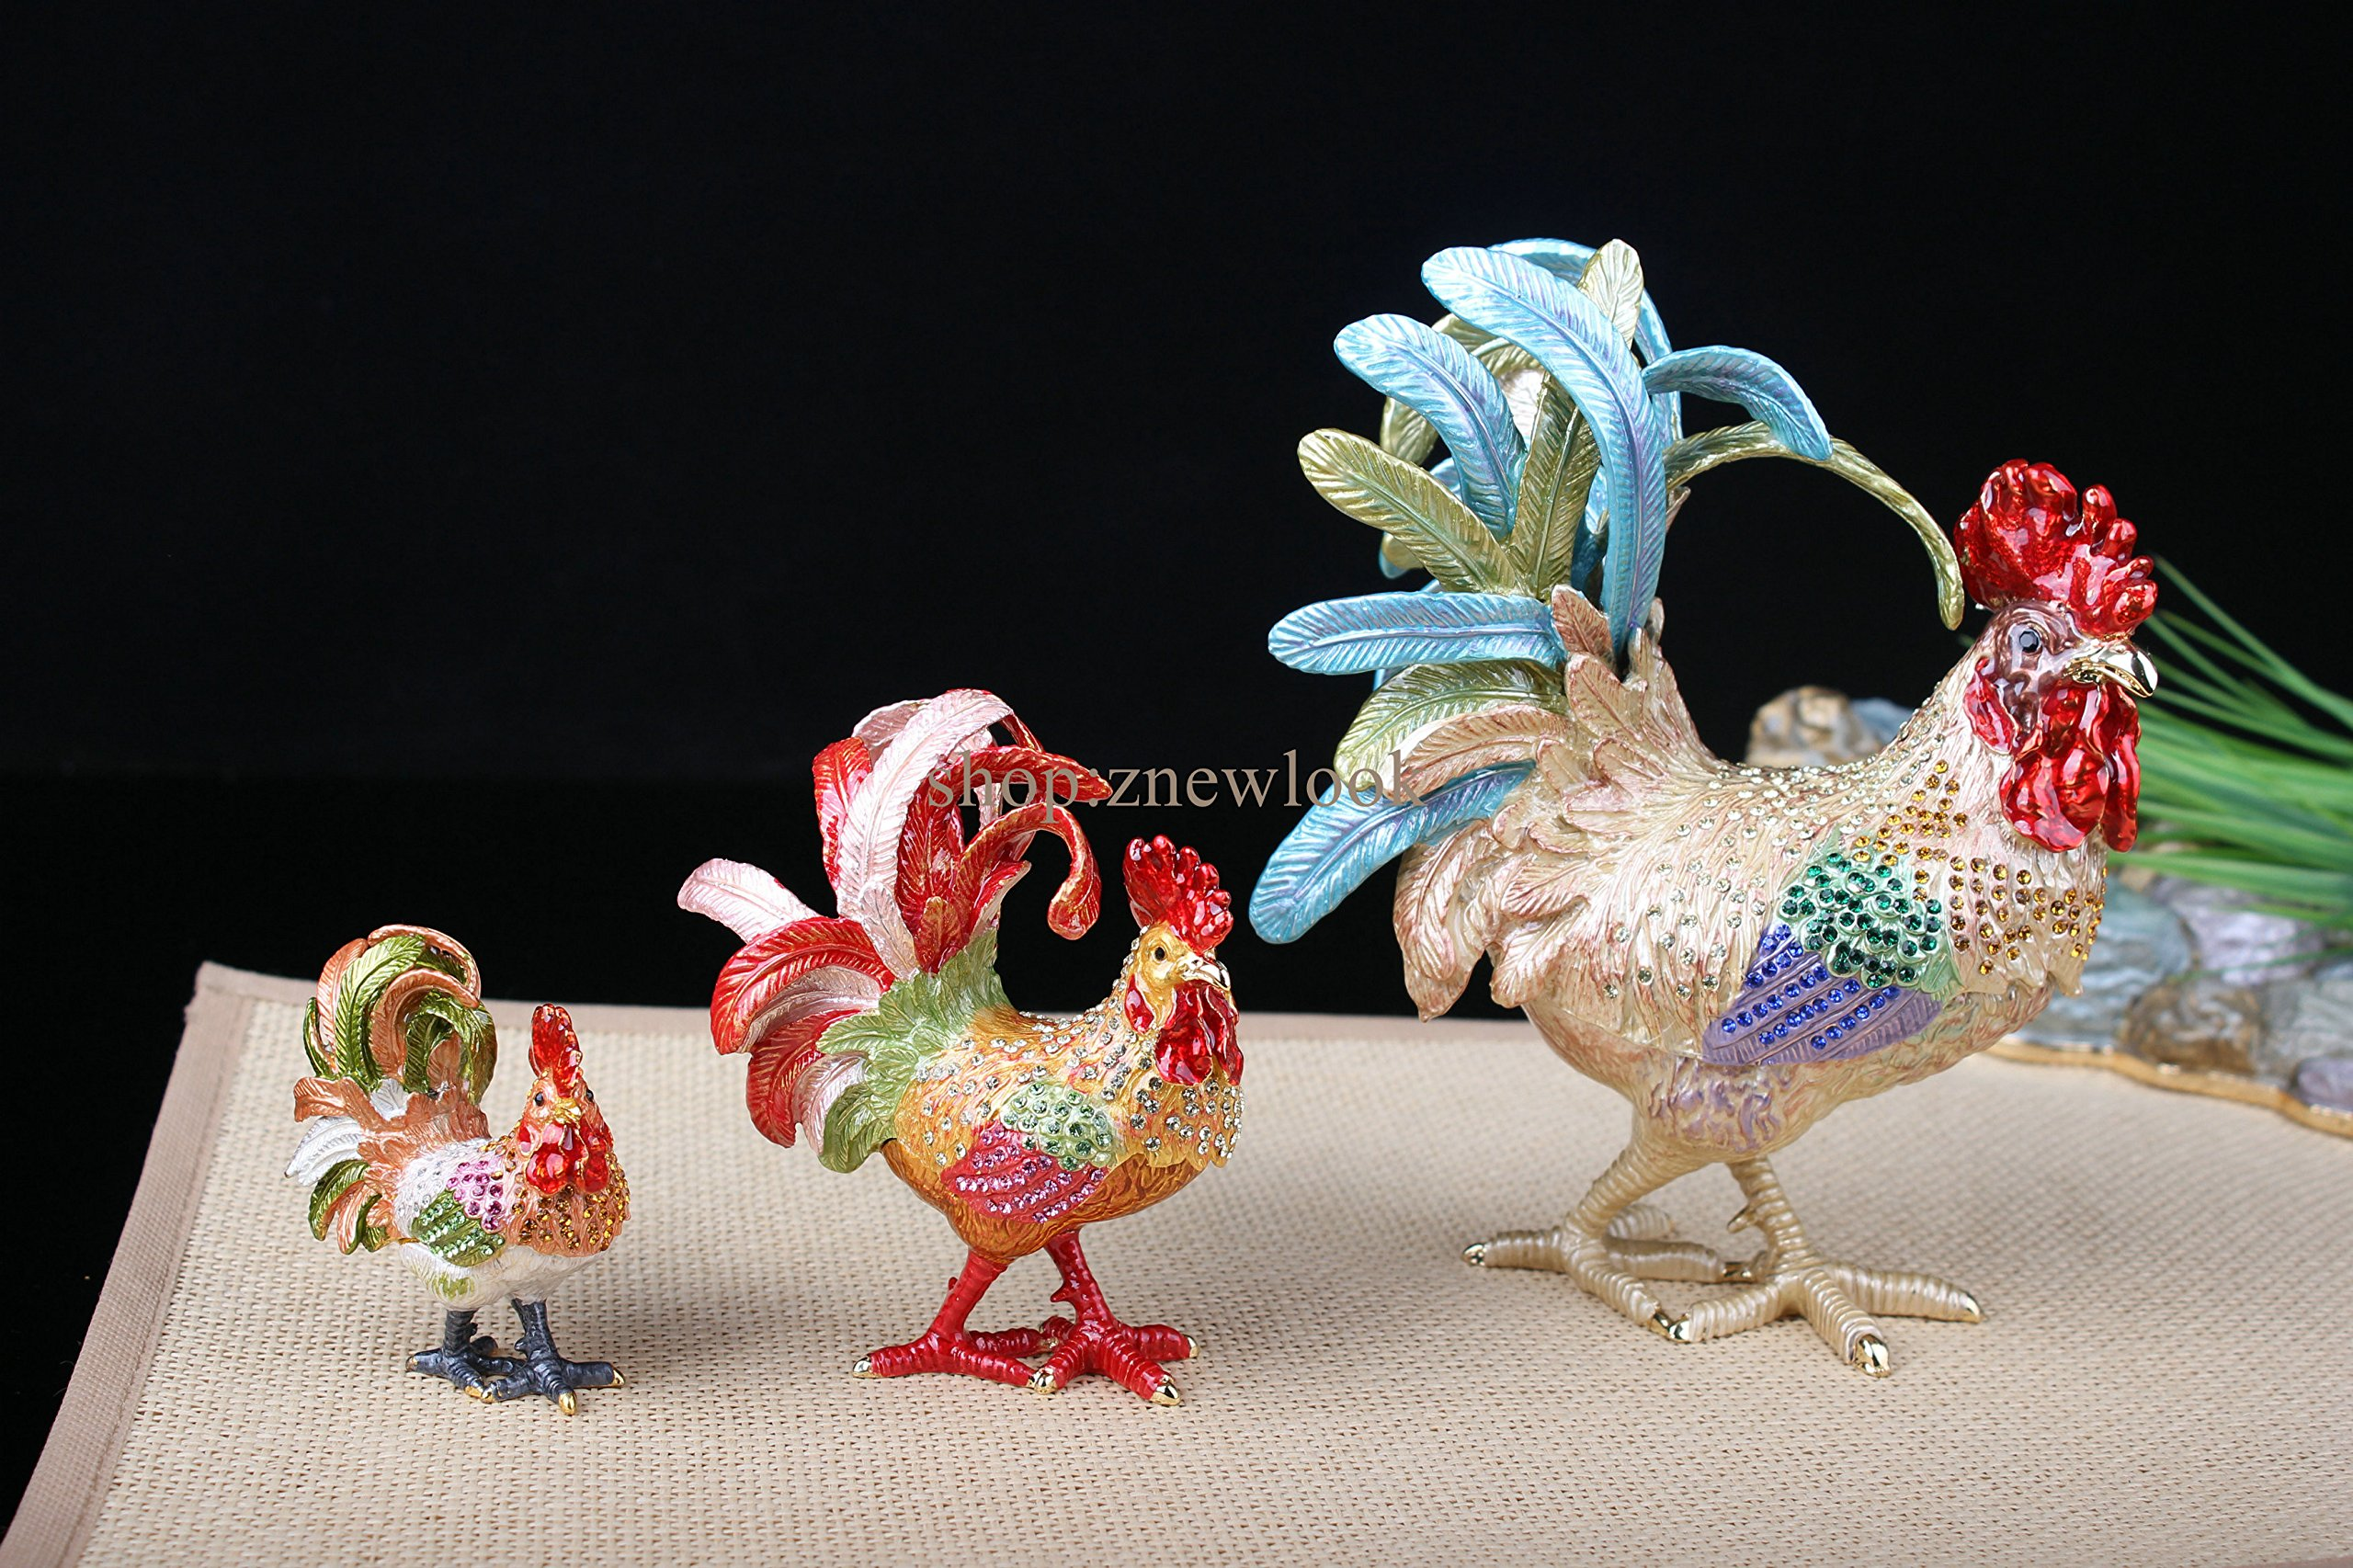 Bejeweled Rooster Chicken Statue Figurine Vintage Chicken / Rooster Trinket Jewelry Box (6x7.5CM) by znewlook (Image #5)